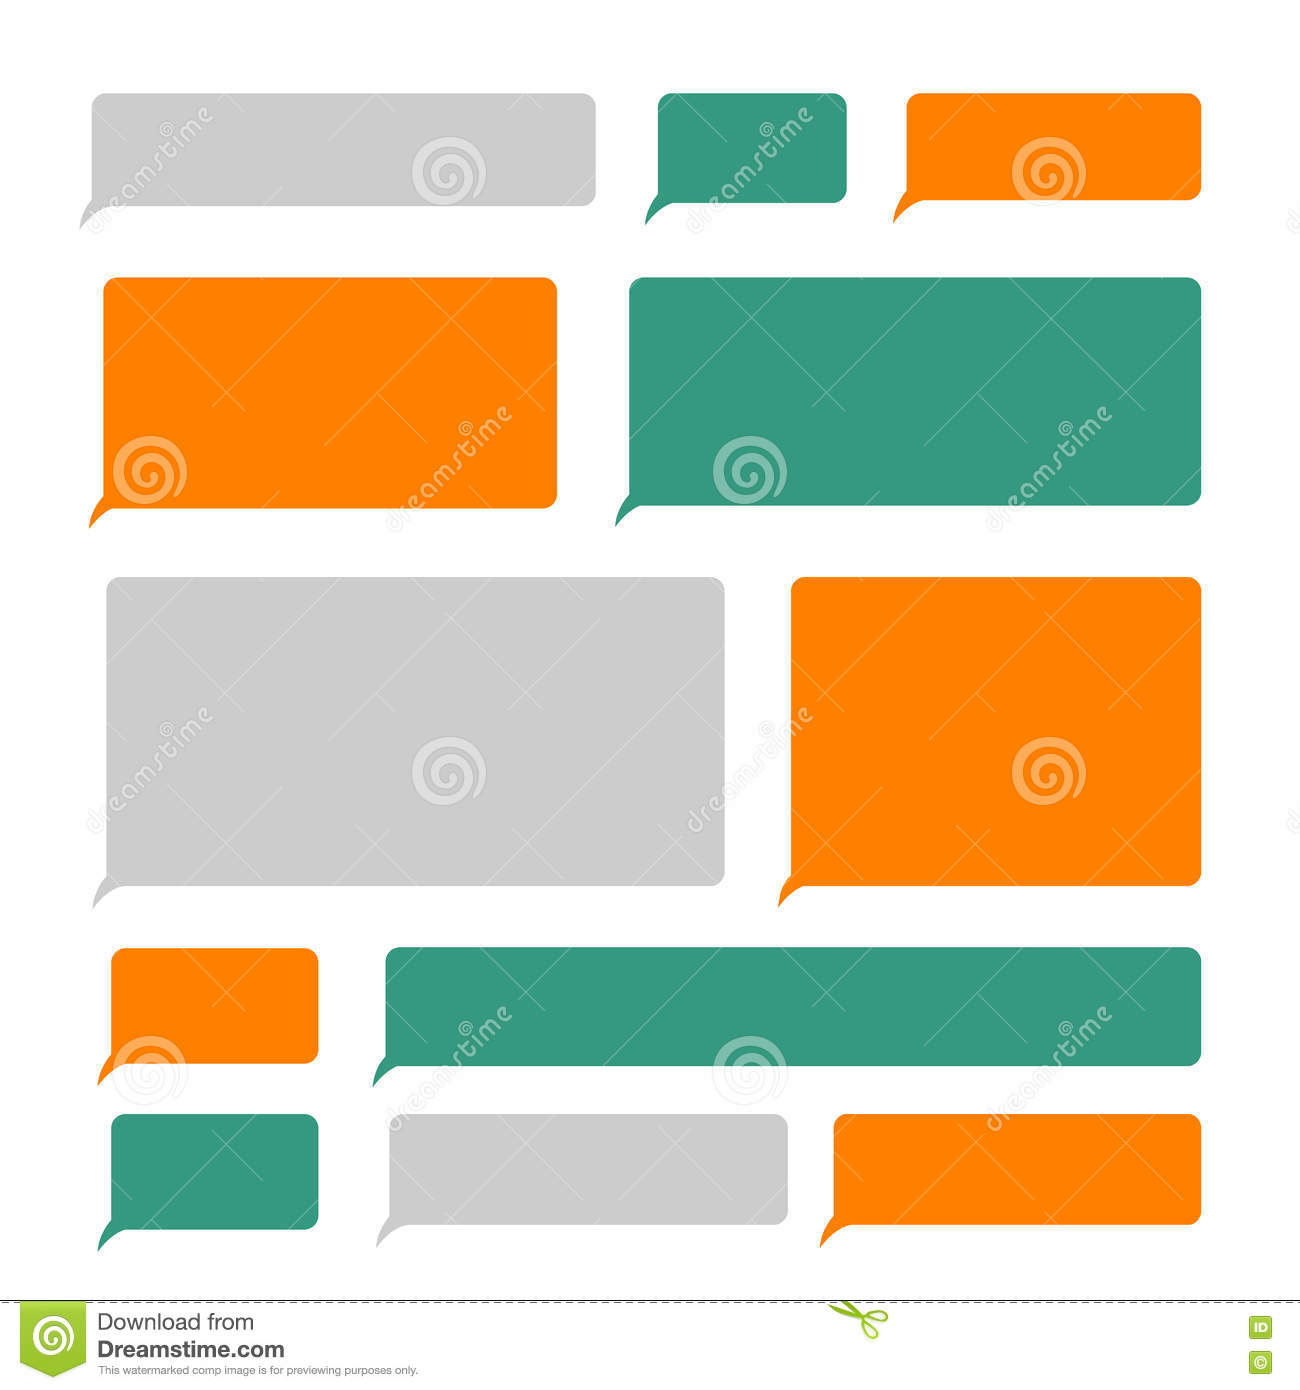 Smartphone Blank Sms Text Mobile Message Bubbles Vector Set Stock